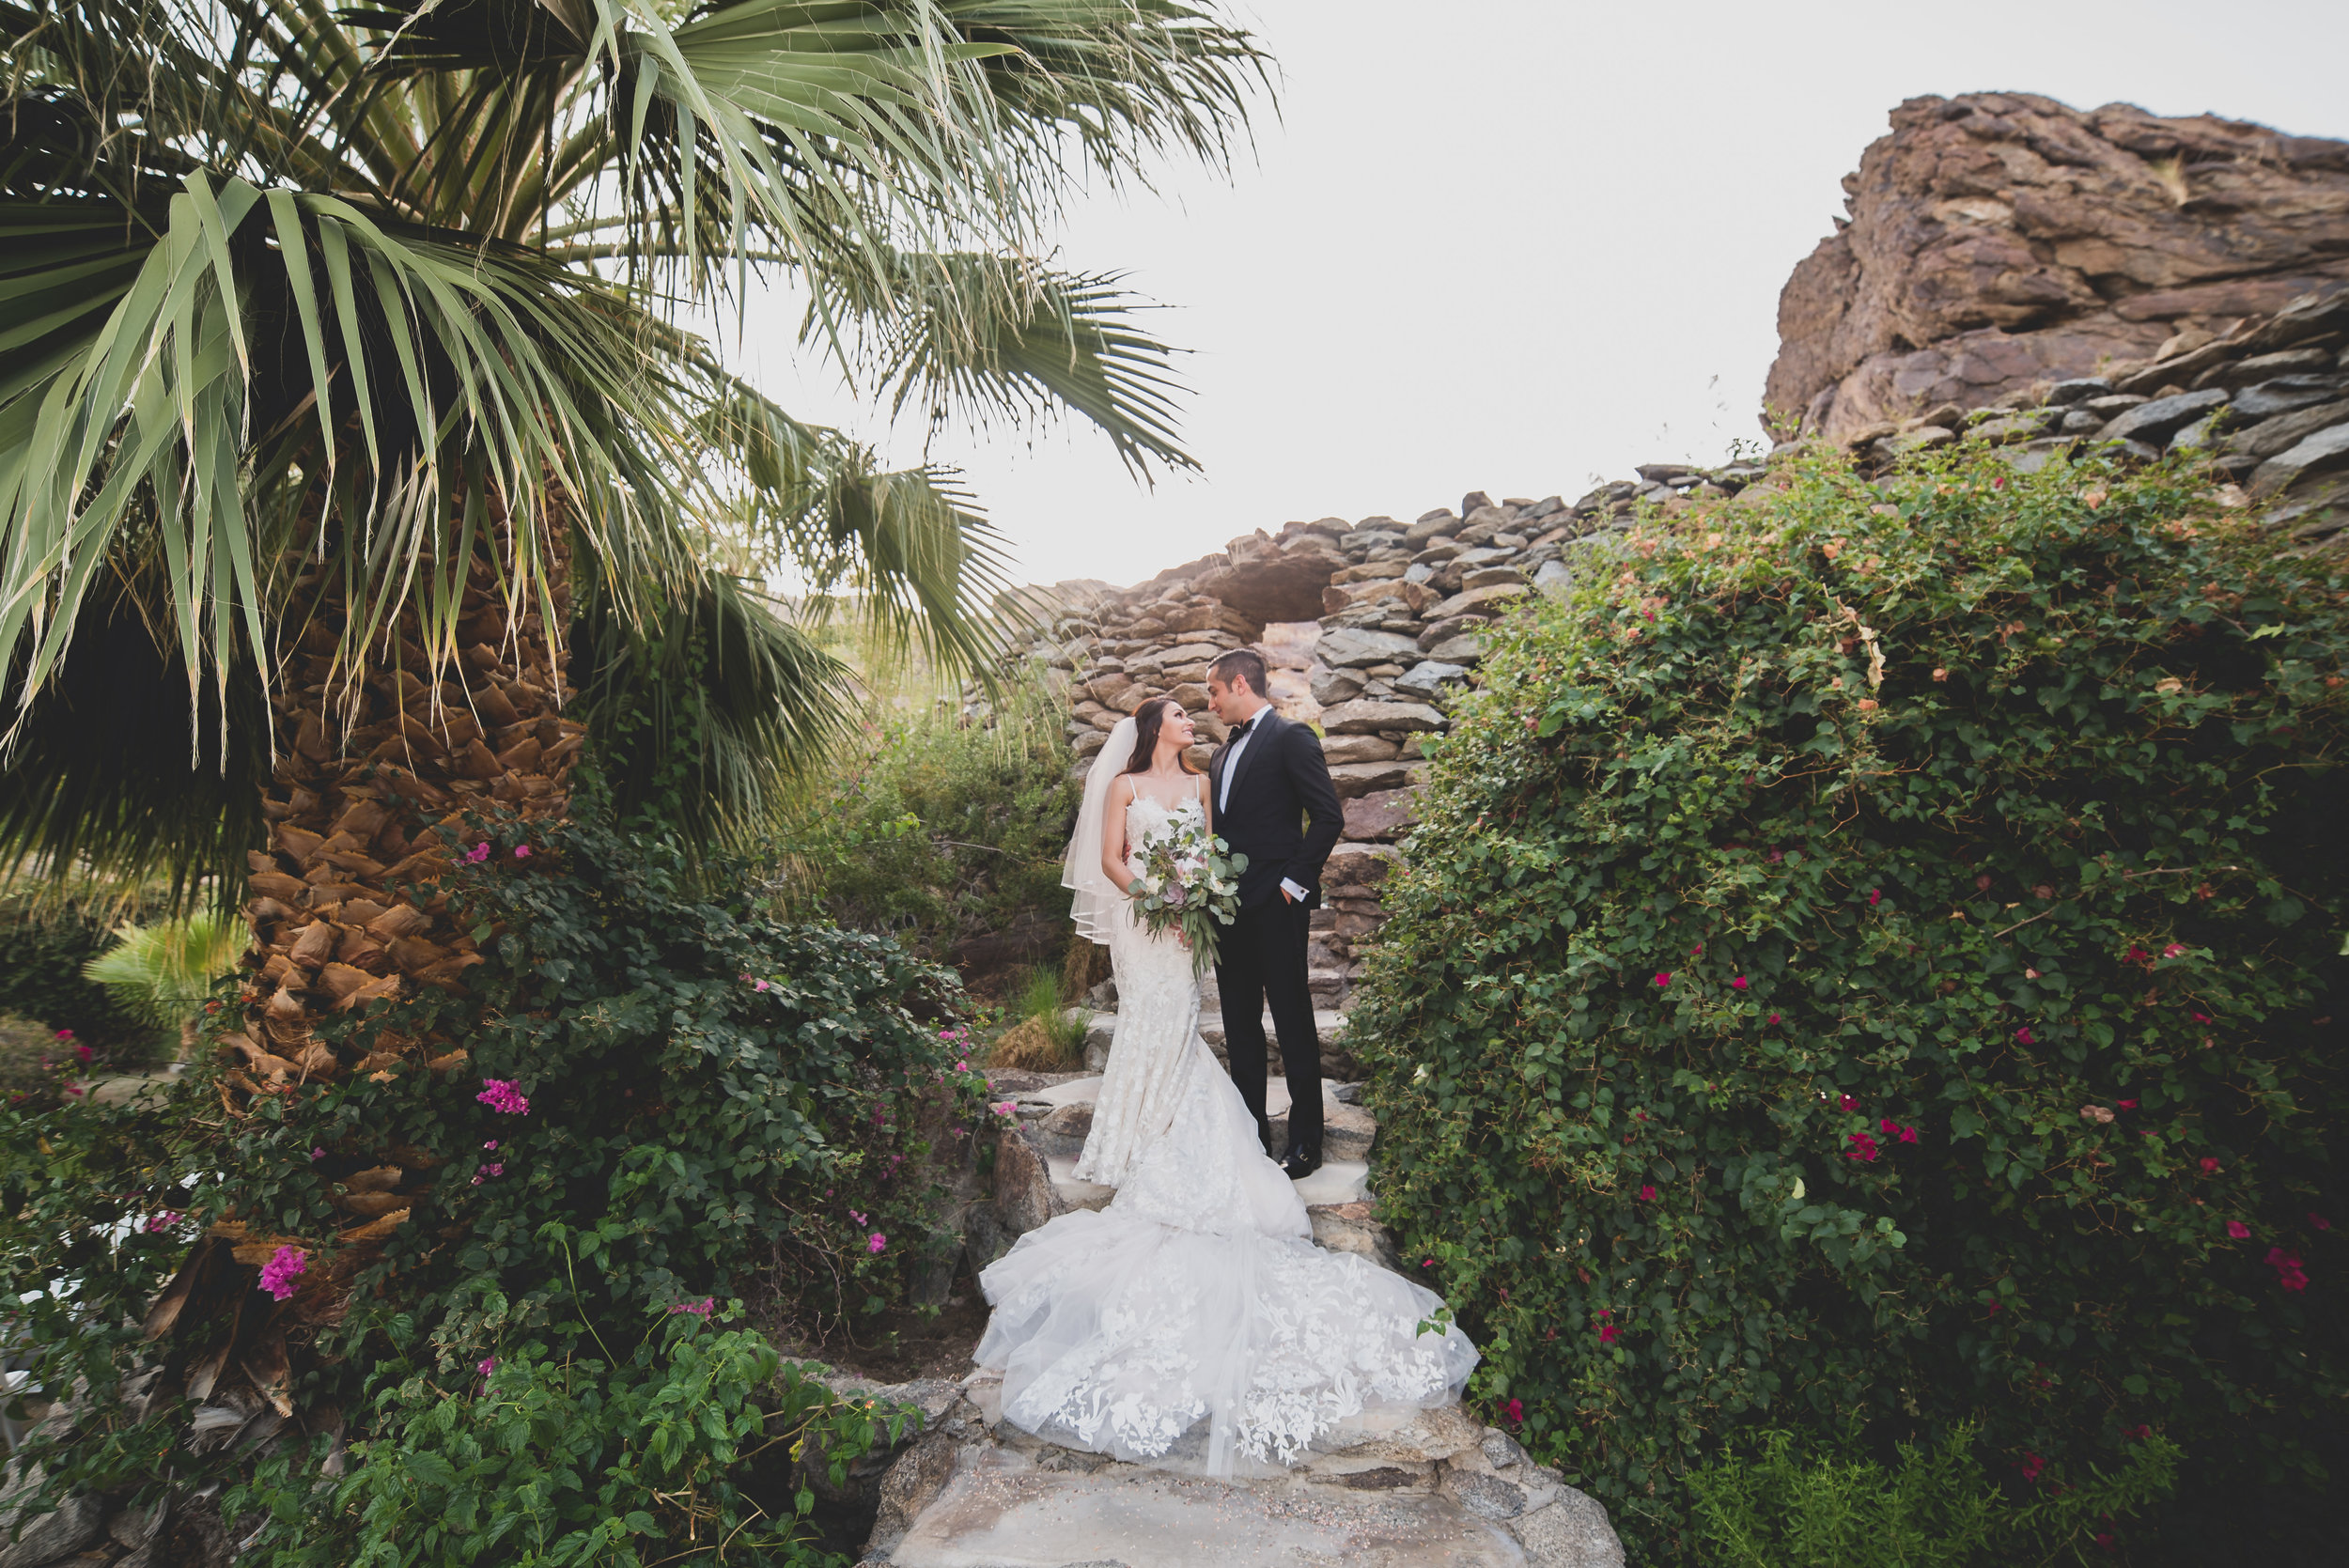 Bride in a flowing white dress and groom in a classic tux surrounded by natural lush greenery and a palm tree.